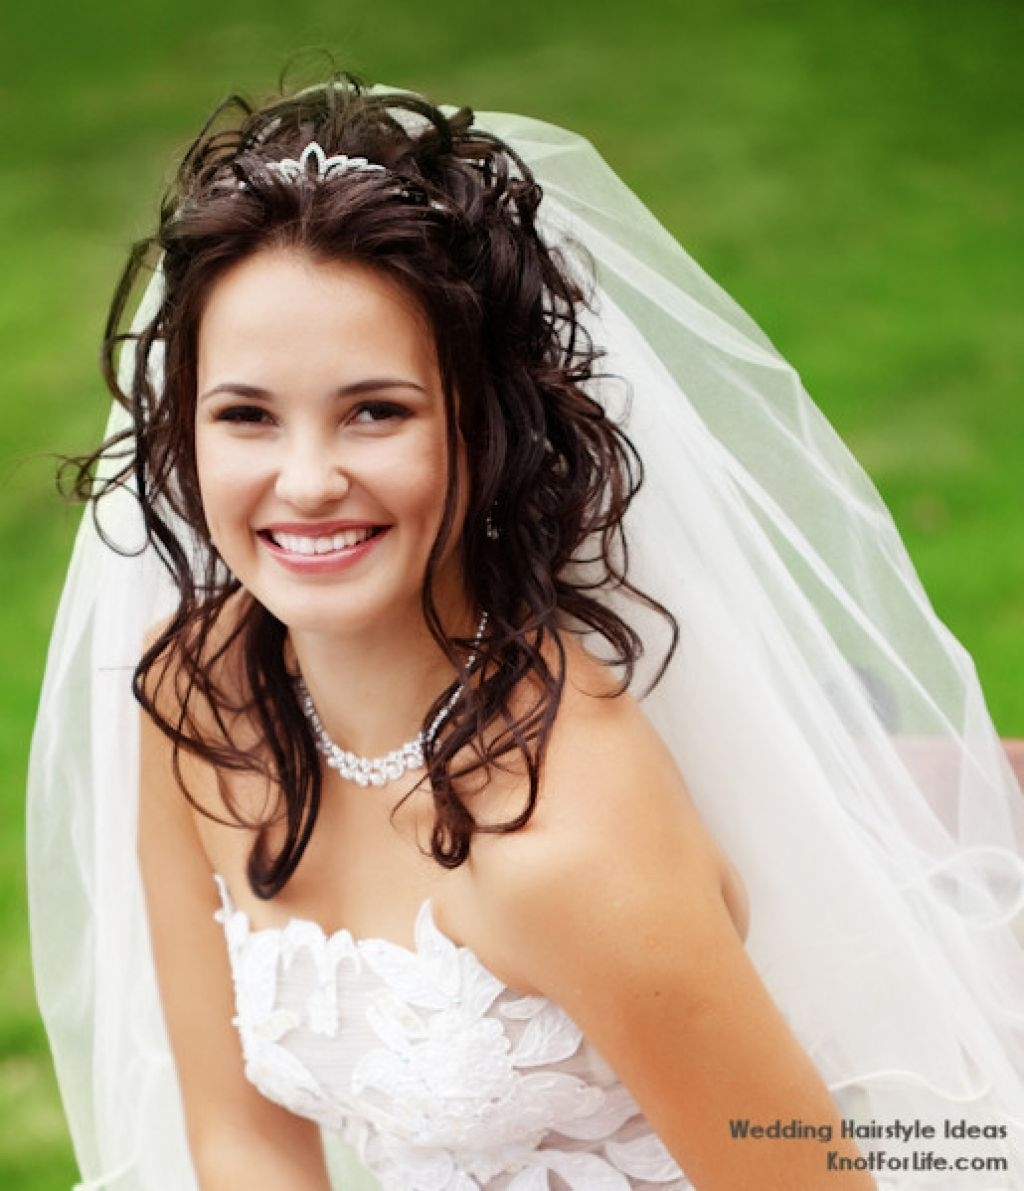 Beautiful Styles Of Wedding Hairstyles With Veils And Tiaras Inside Trendy Bride Hairstyles For Long Hair With Veil (View 15 of 15)